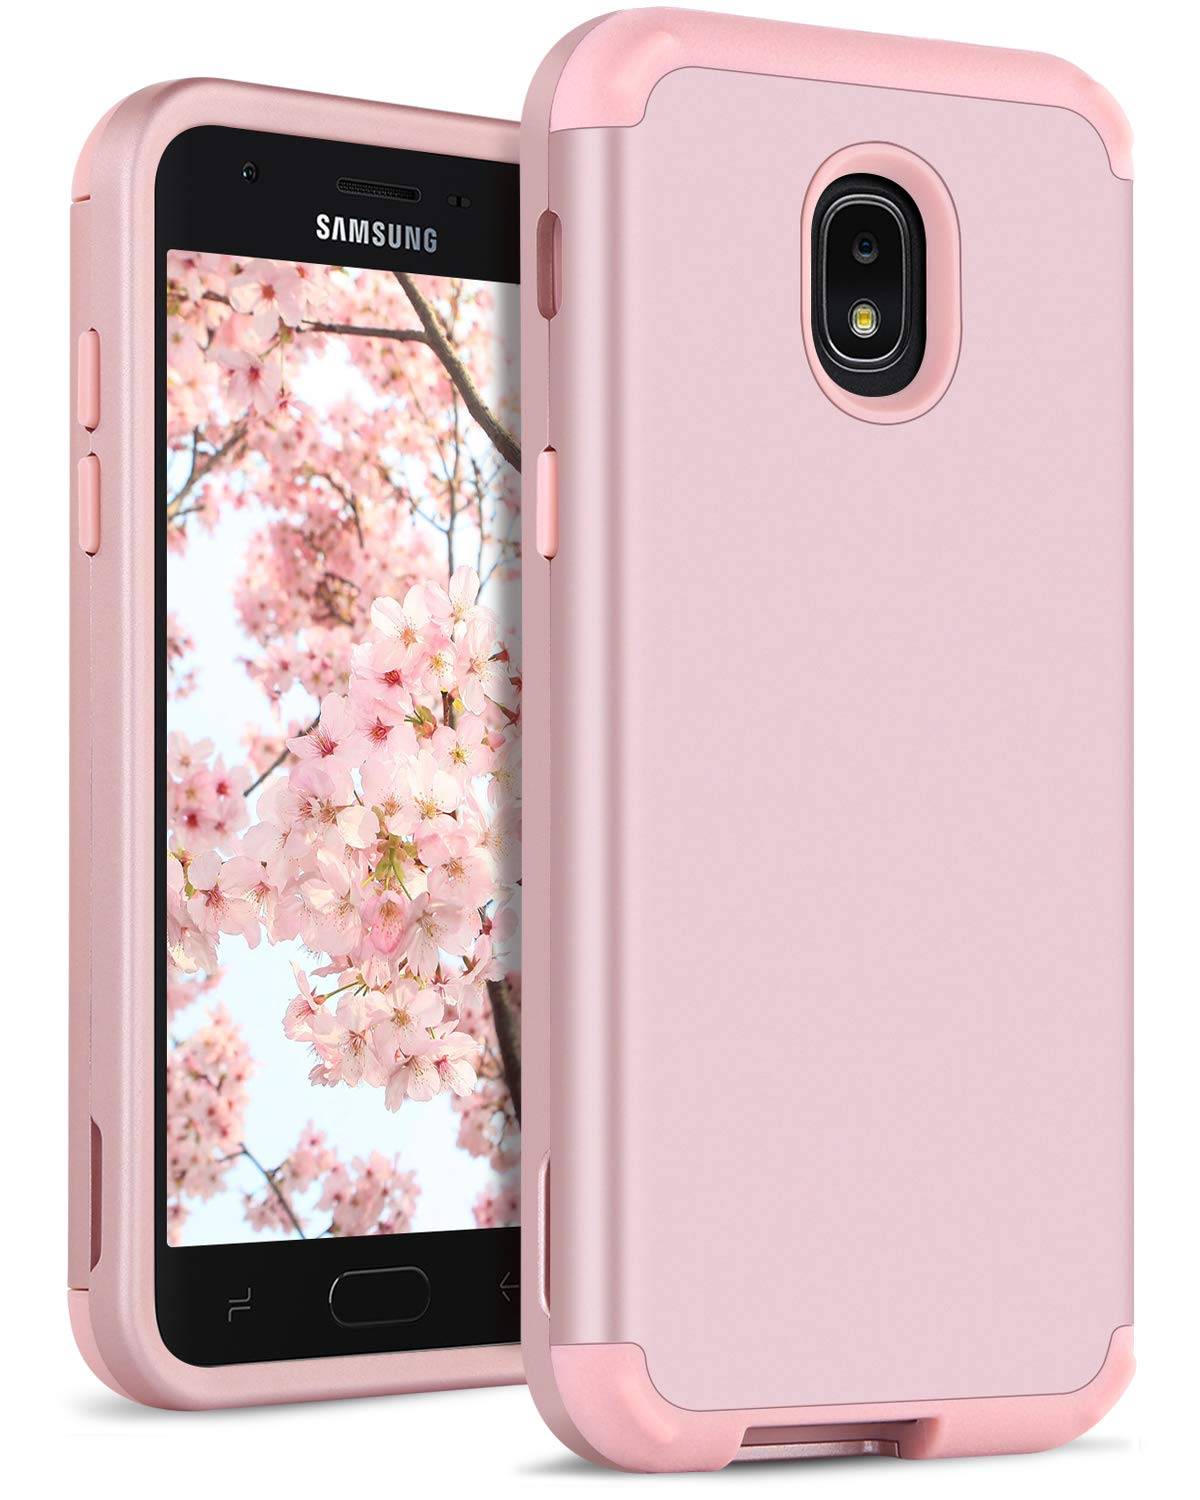 DOMAVER Case for Galaxy J3 2018, Samsung Galaxy J3 Case Shockproof Heavy Duty Dual Layer Hybrid 3 in 1 Hard PC Soft Bumper Protective Phone Case Cover Samsung Galaxy J3 2018, Rose Gold/Pink Google Pixel 3